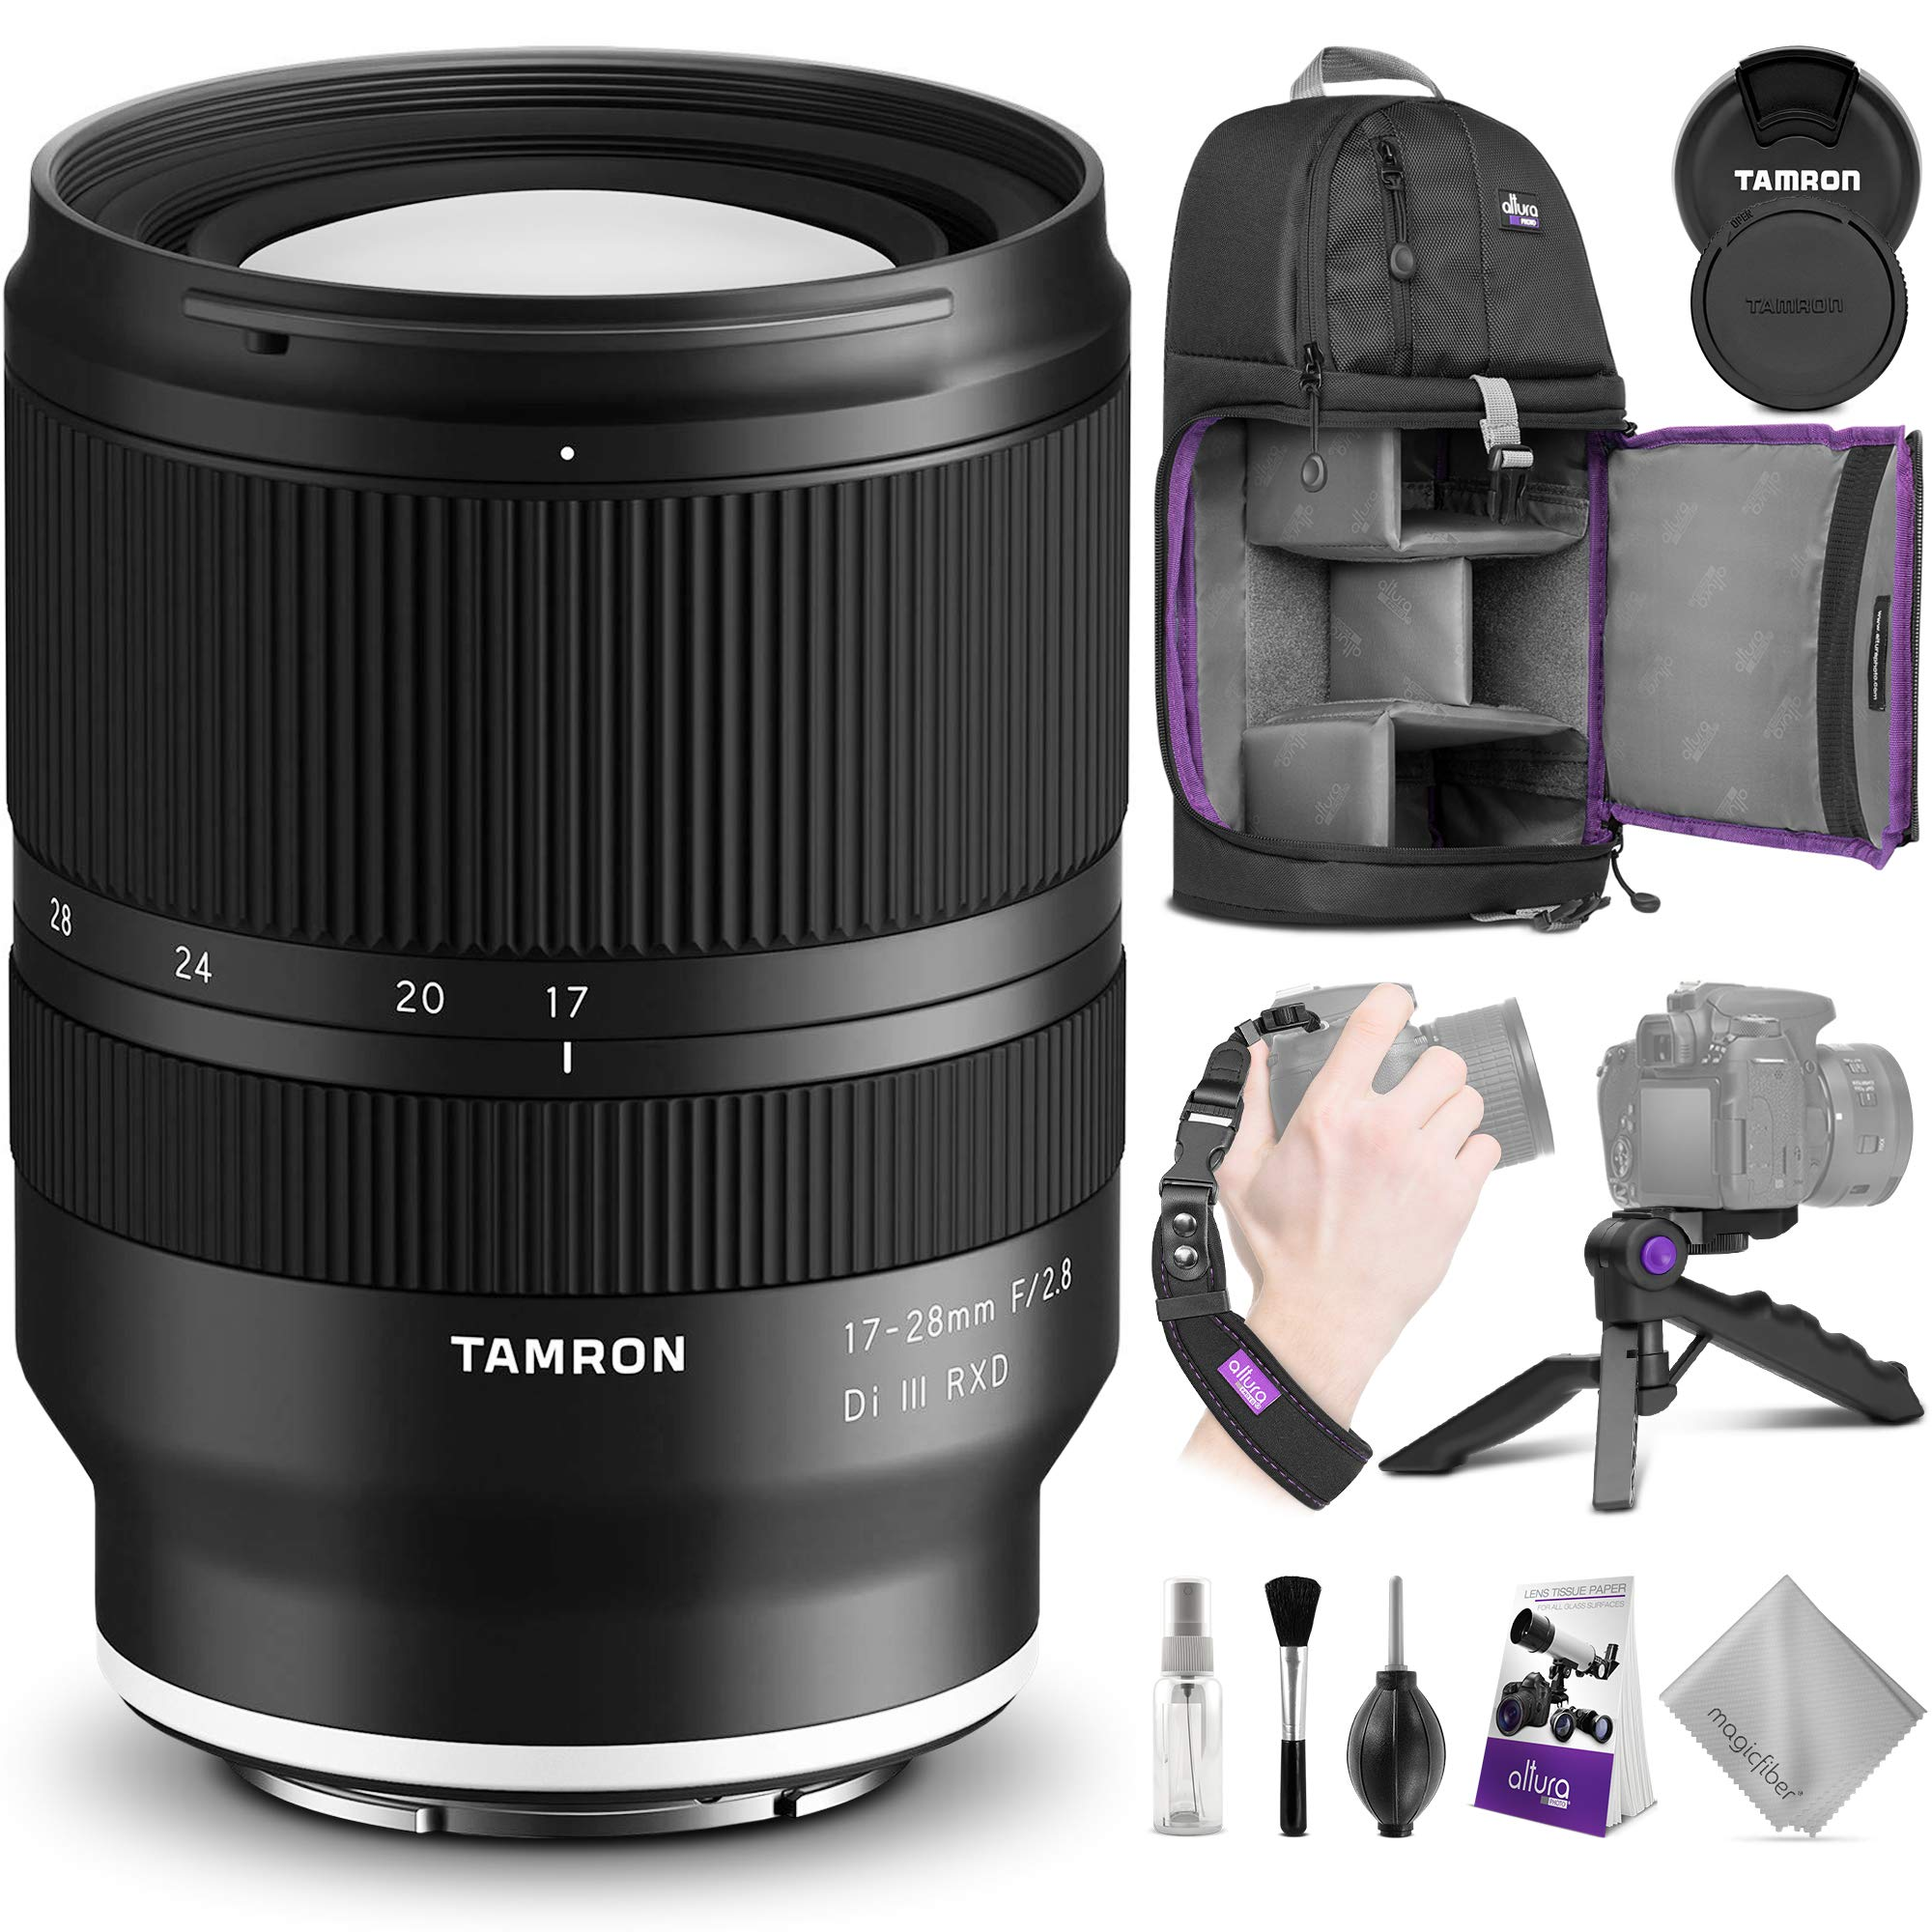 Tamron 17-28mm f/2.8 Di III RXD Lens for Sony E w/Advanced Photo & Travel Bundle by Tamron